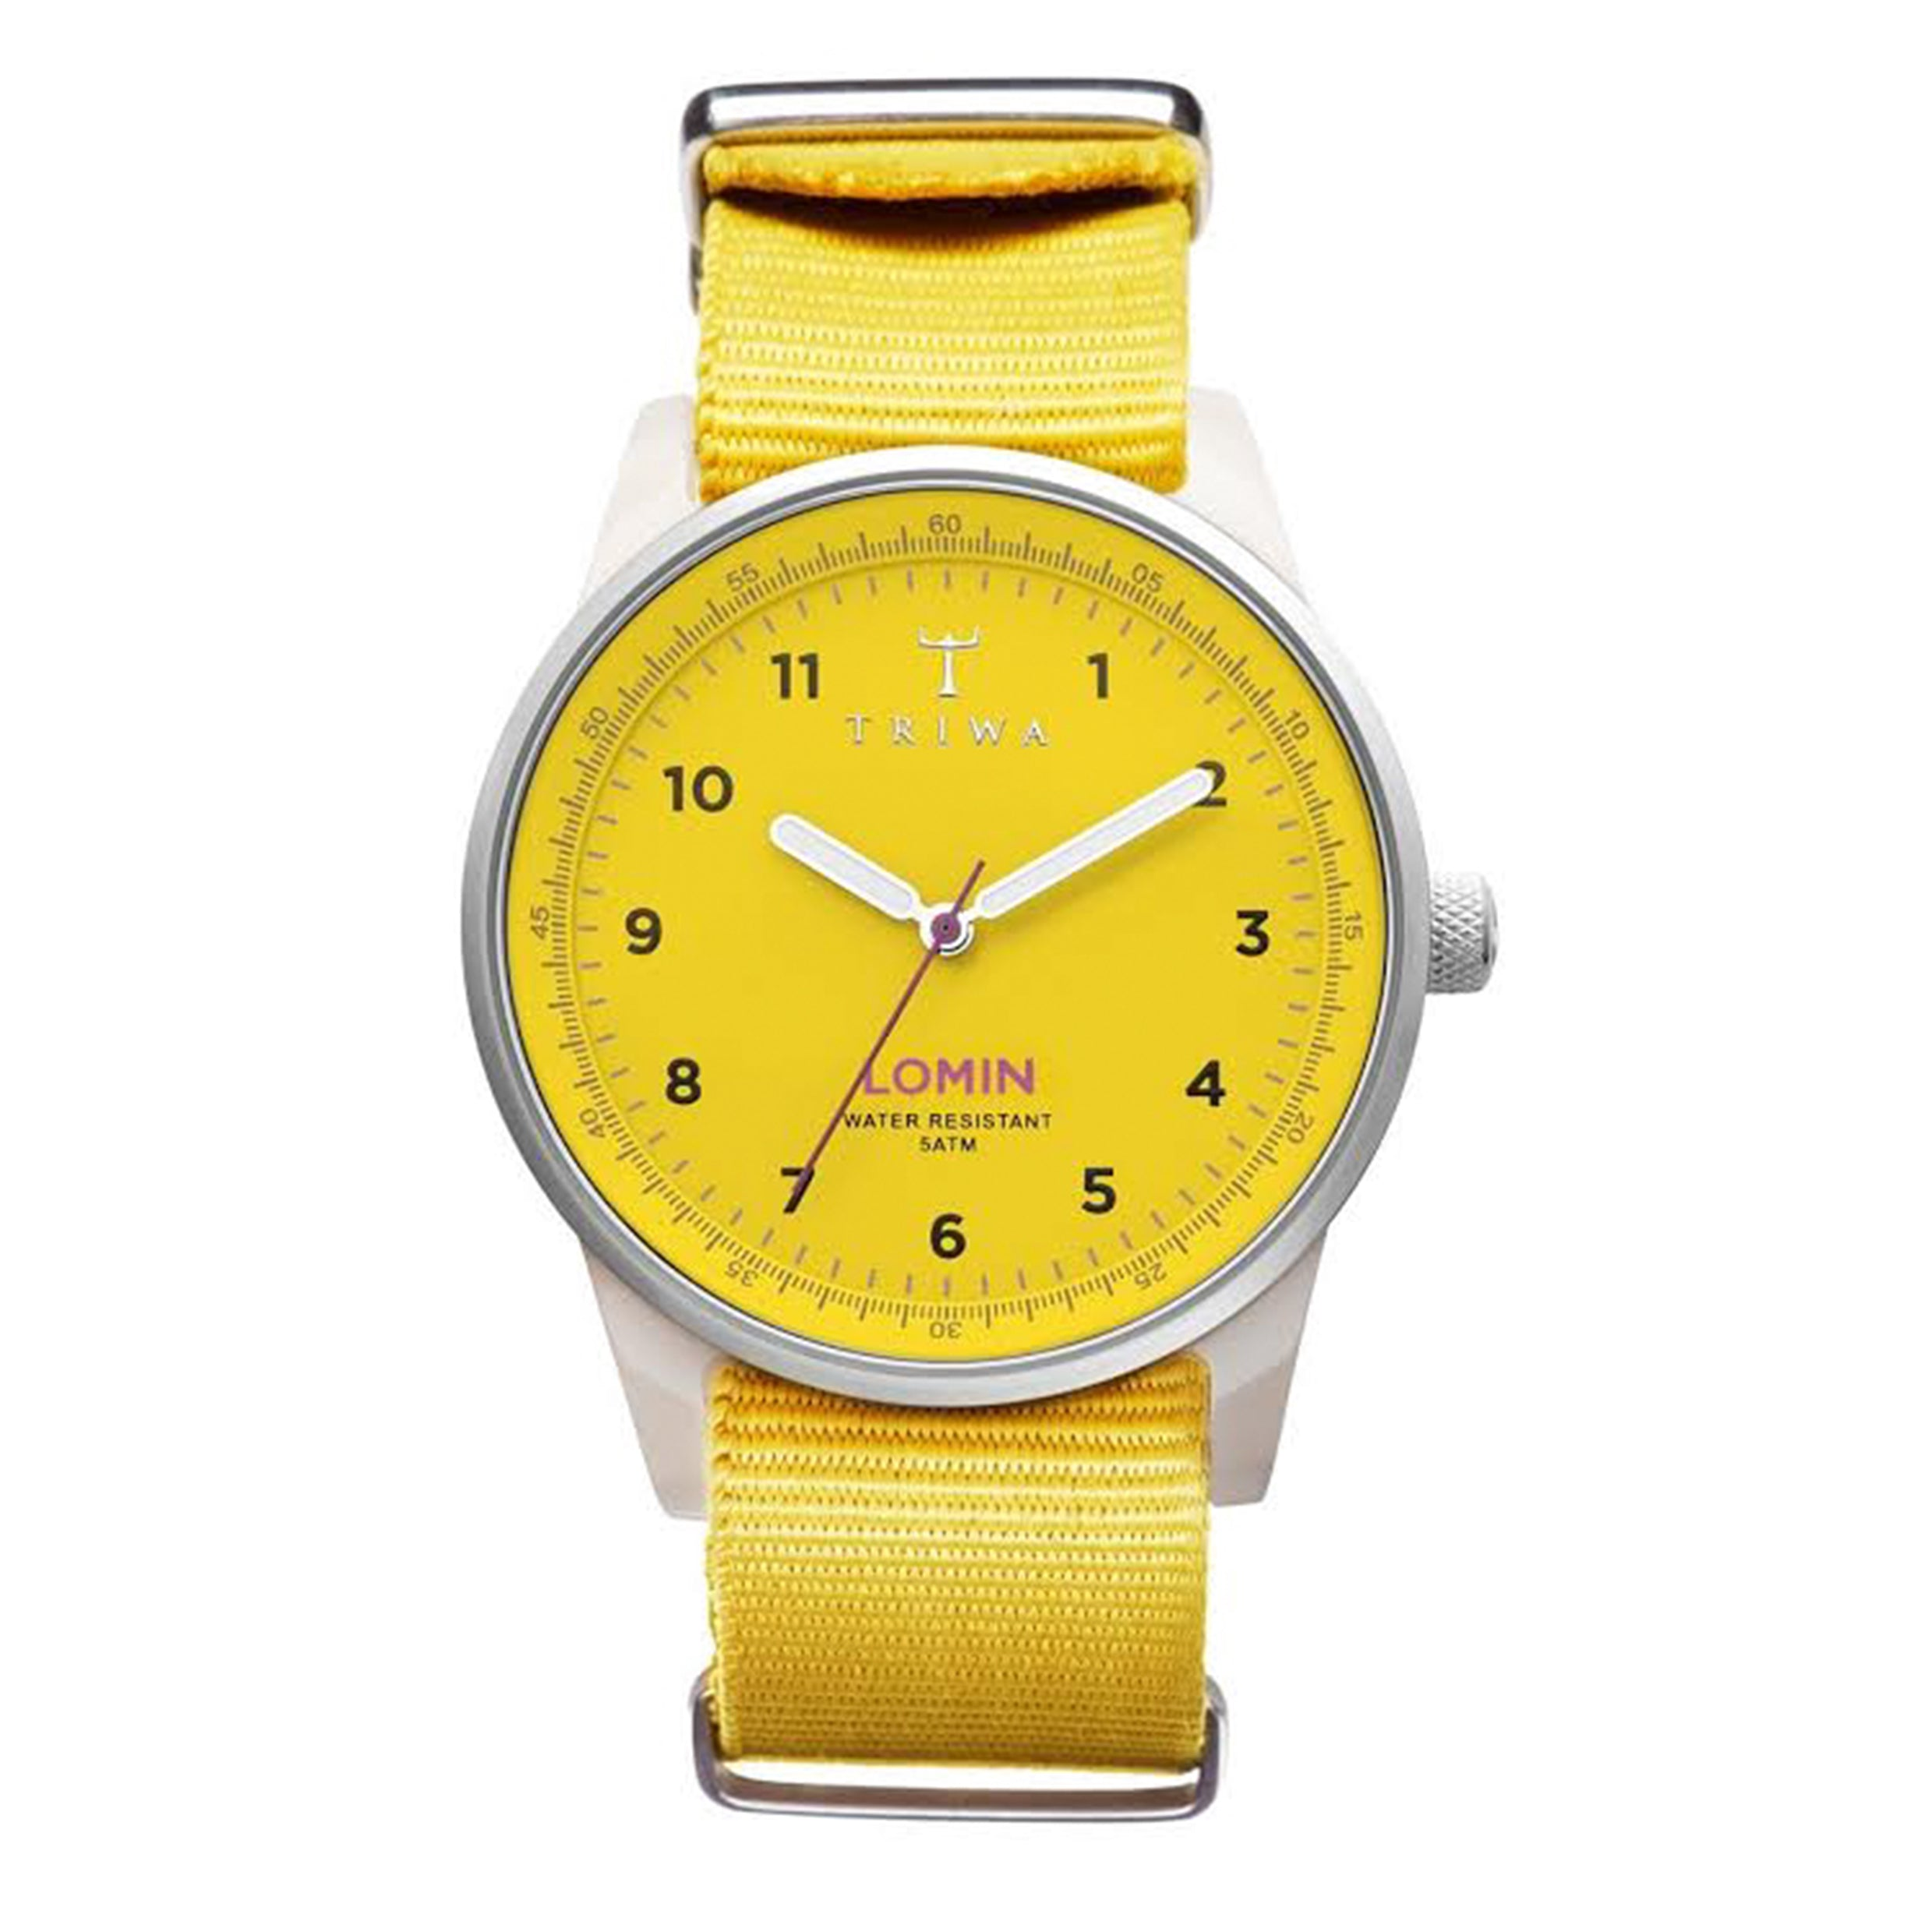 Triwa Lomin Yellow